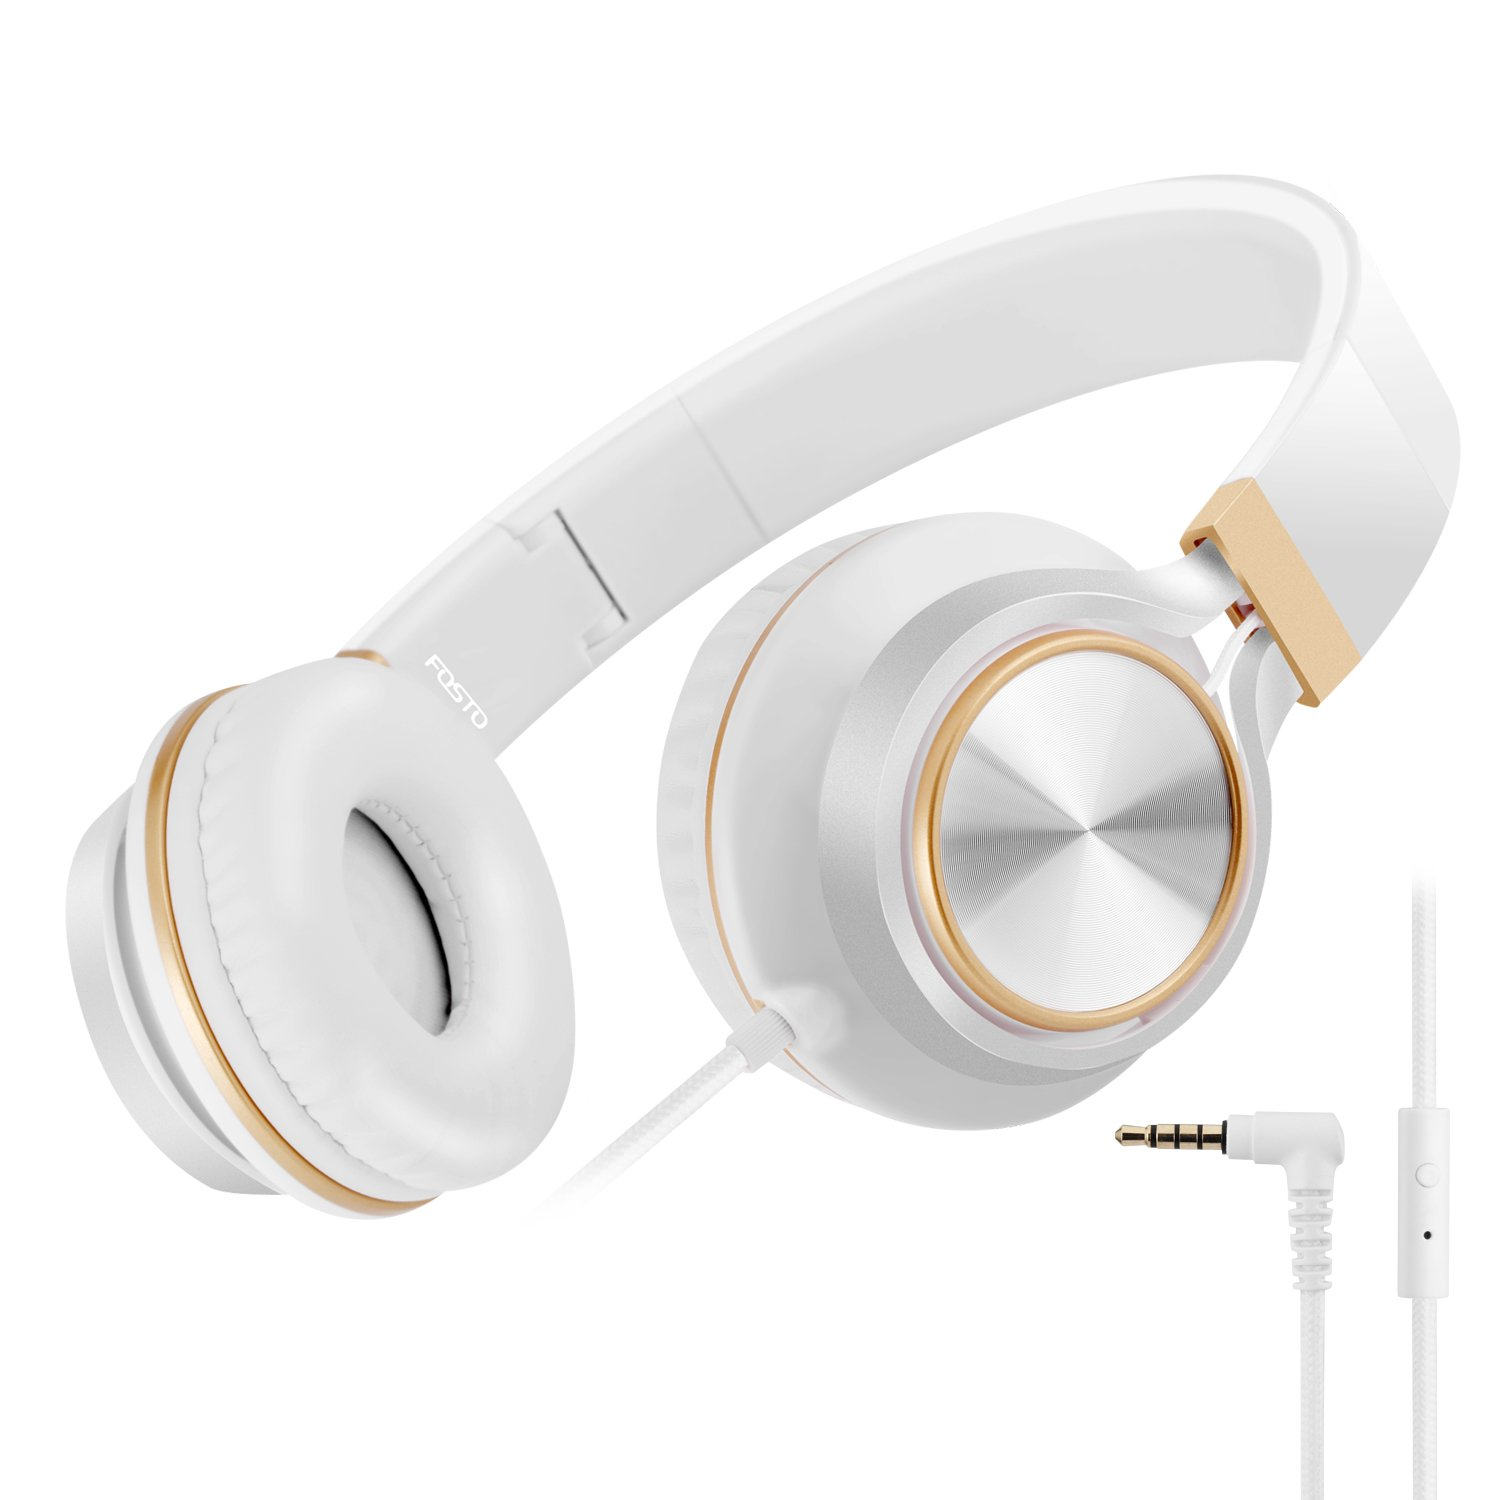 Headphones, FOSTO FT58 Stereo Folding Headset Strong Low Bass Headphones with Microphone for iPhone, All Android Smartphones, PC, Laptop, Mp3/mp4, Tablet Earphones (White/Gold)